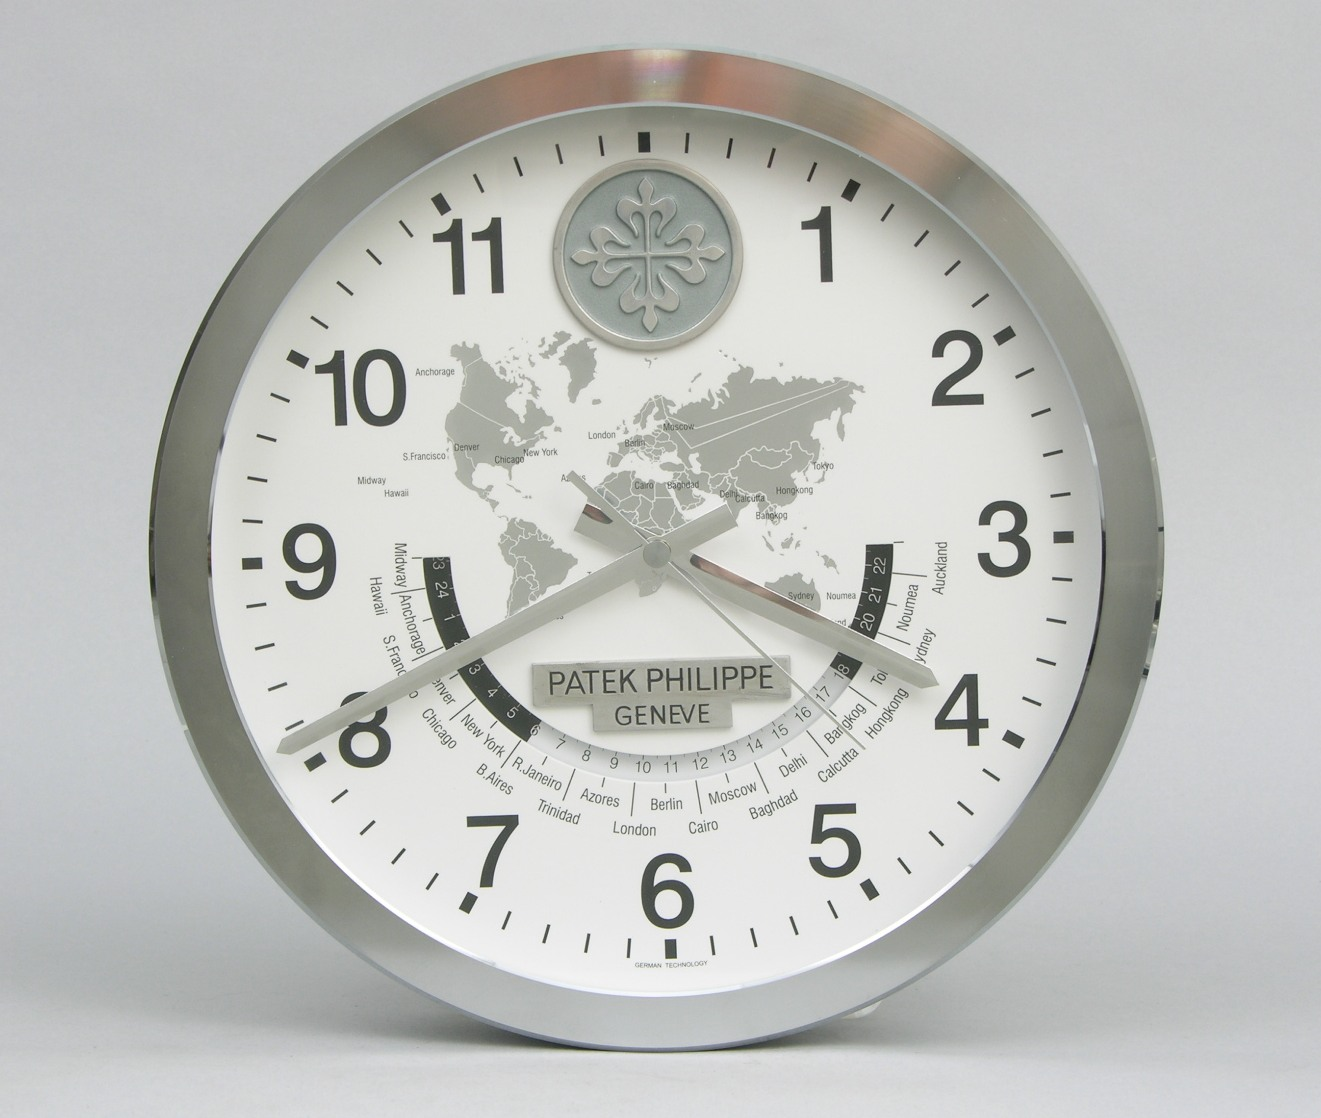 A Patek Philippe Showroom Display Wall Clock 091606 Sold 32775